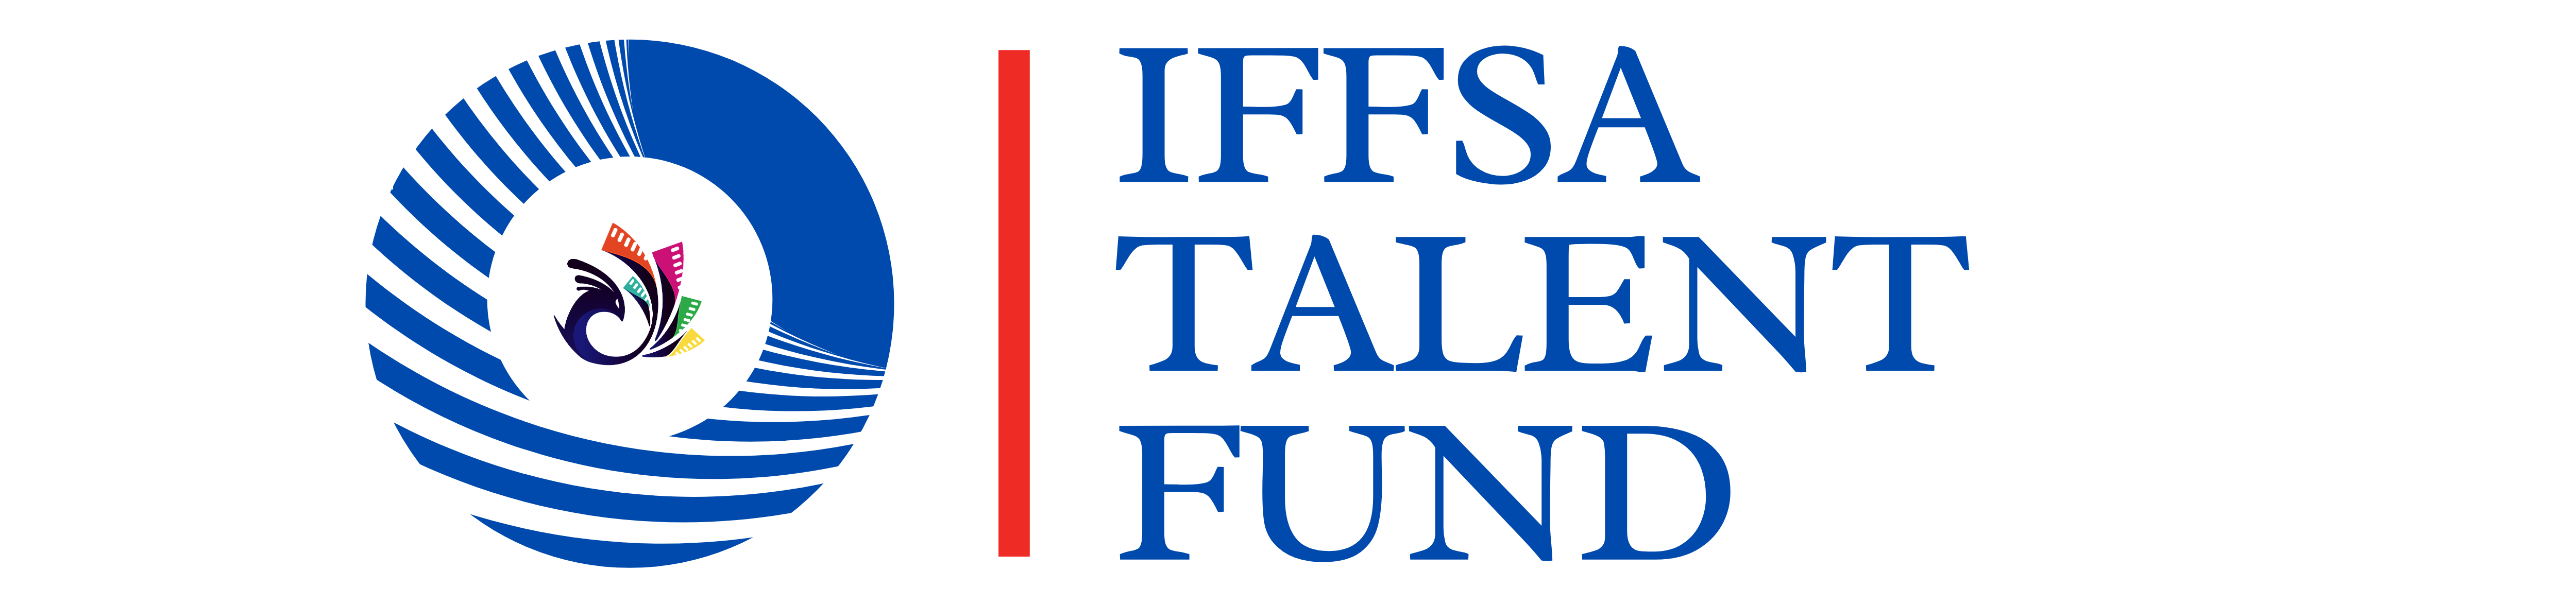 IFFSA Talent Fund Logo